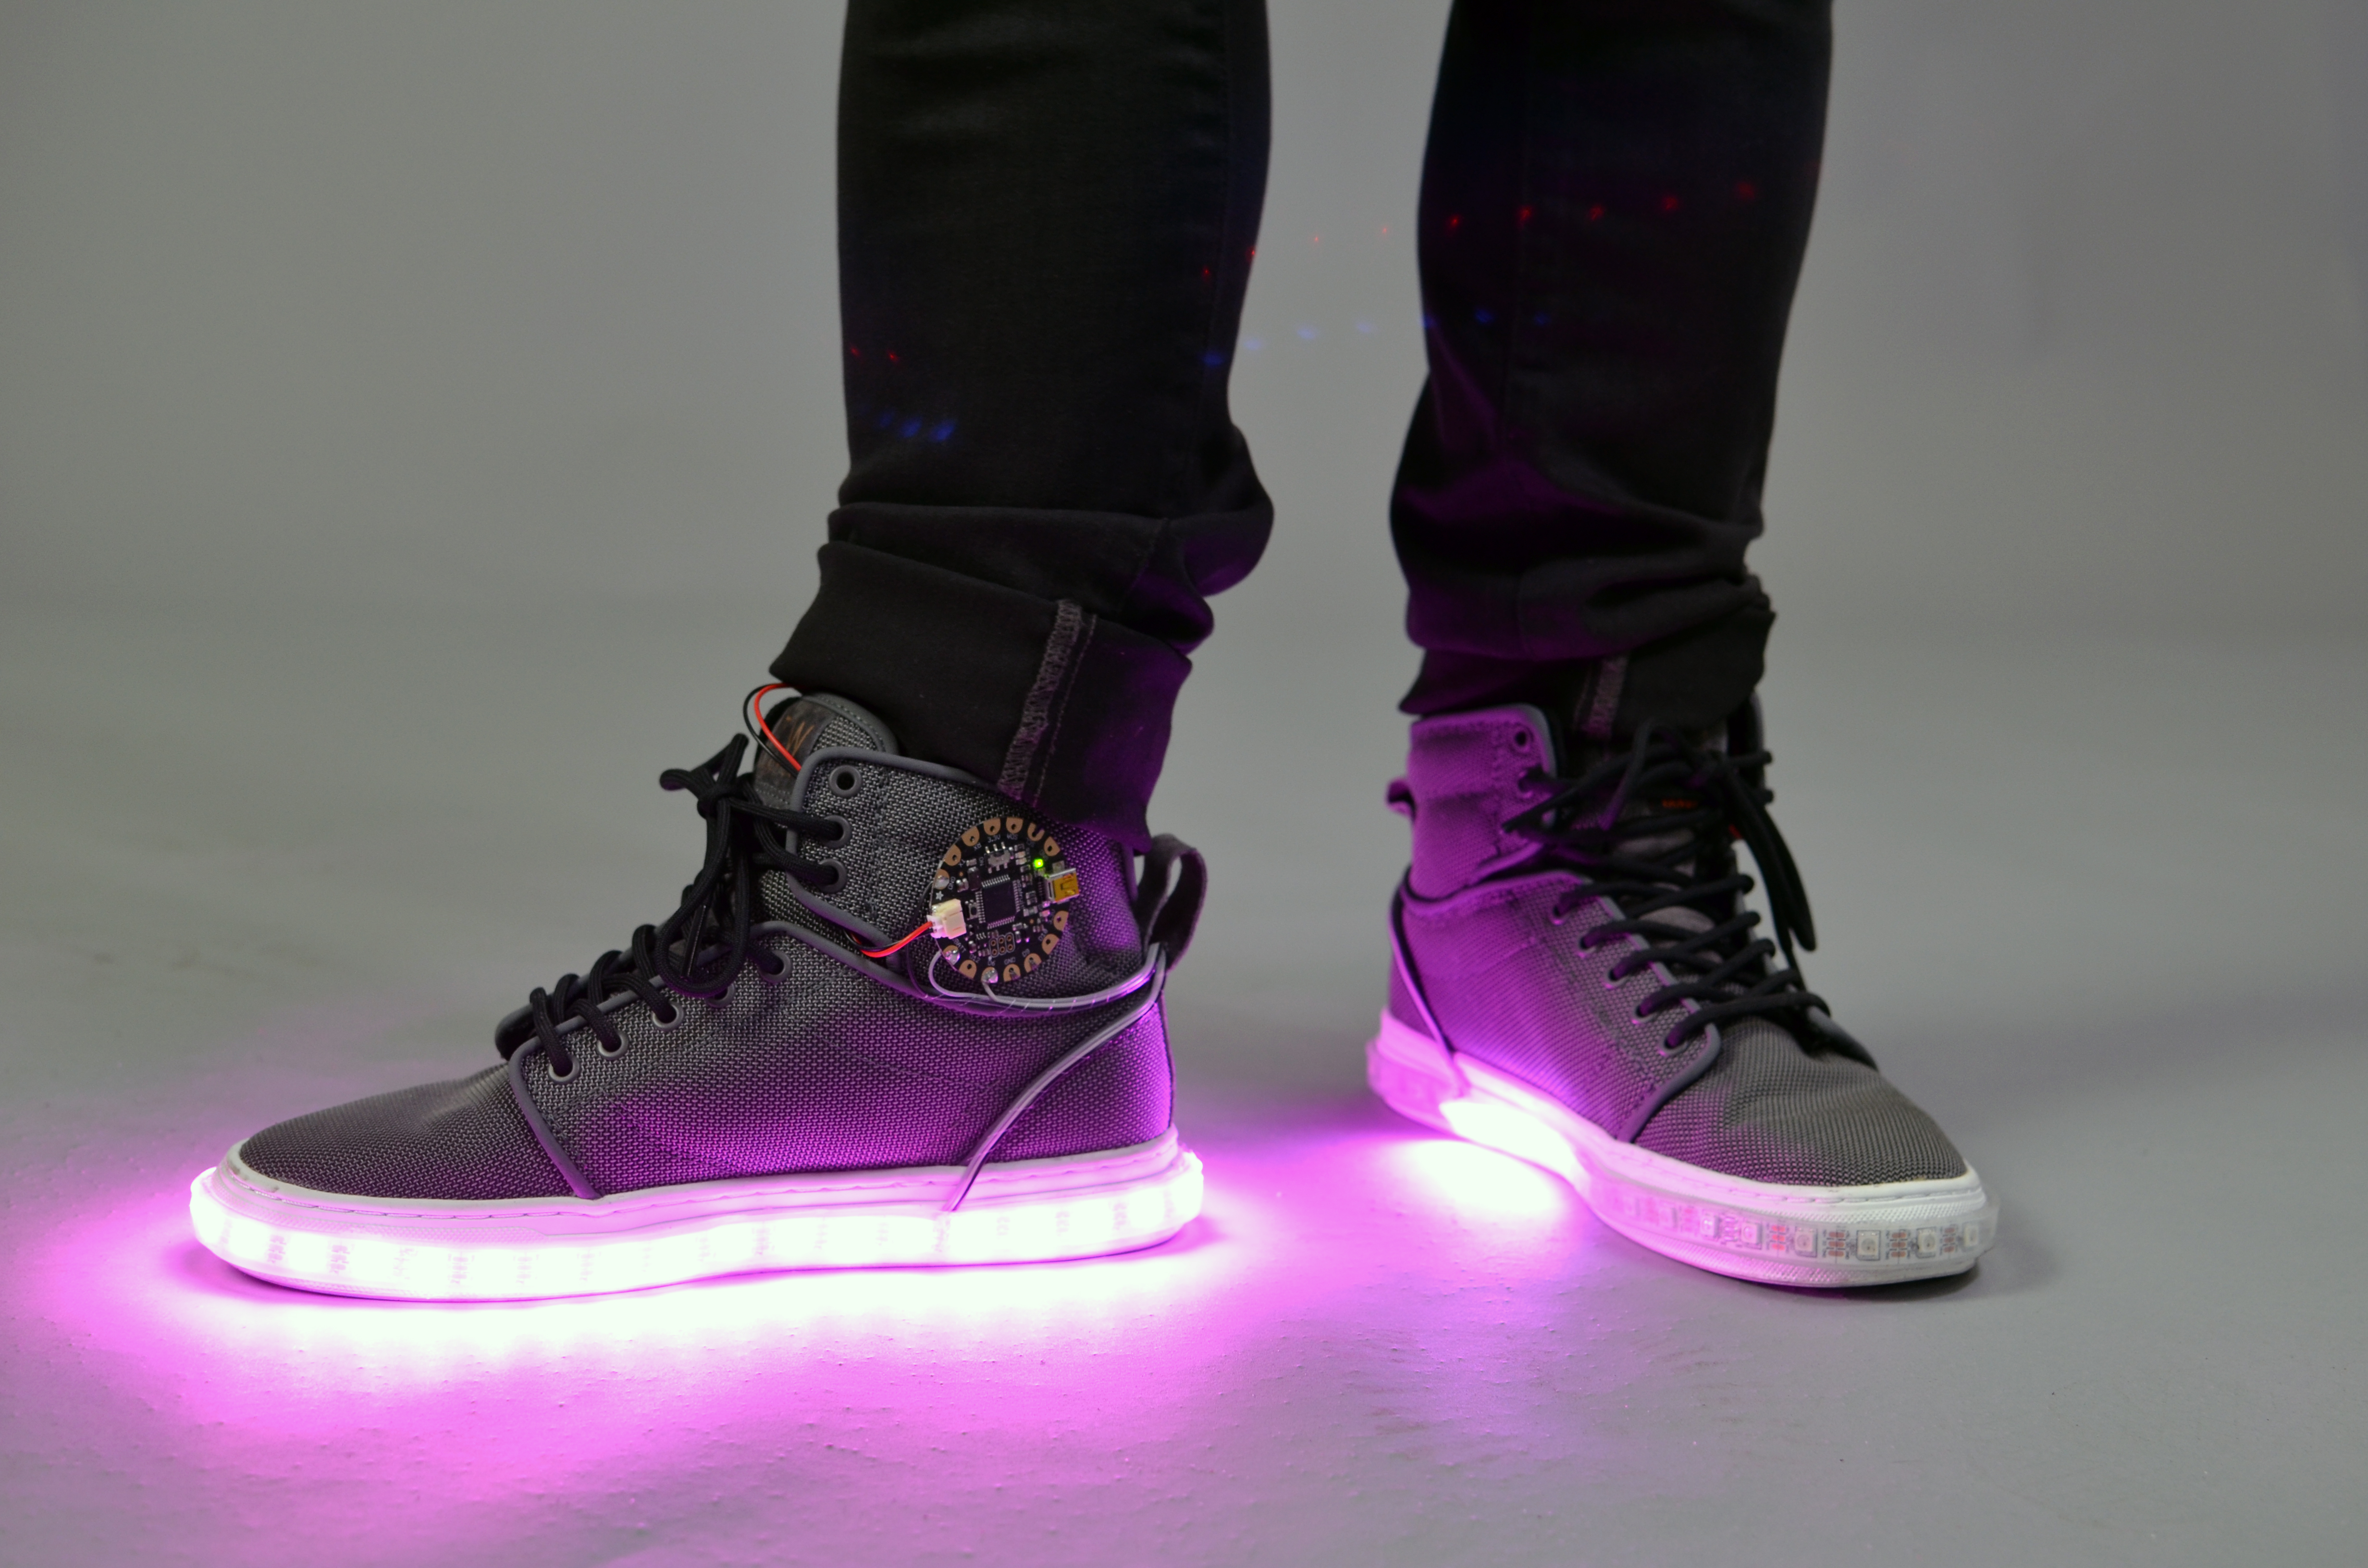 flora_firewalker-led-sneakers-adafruit-30.jpg